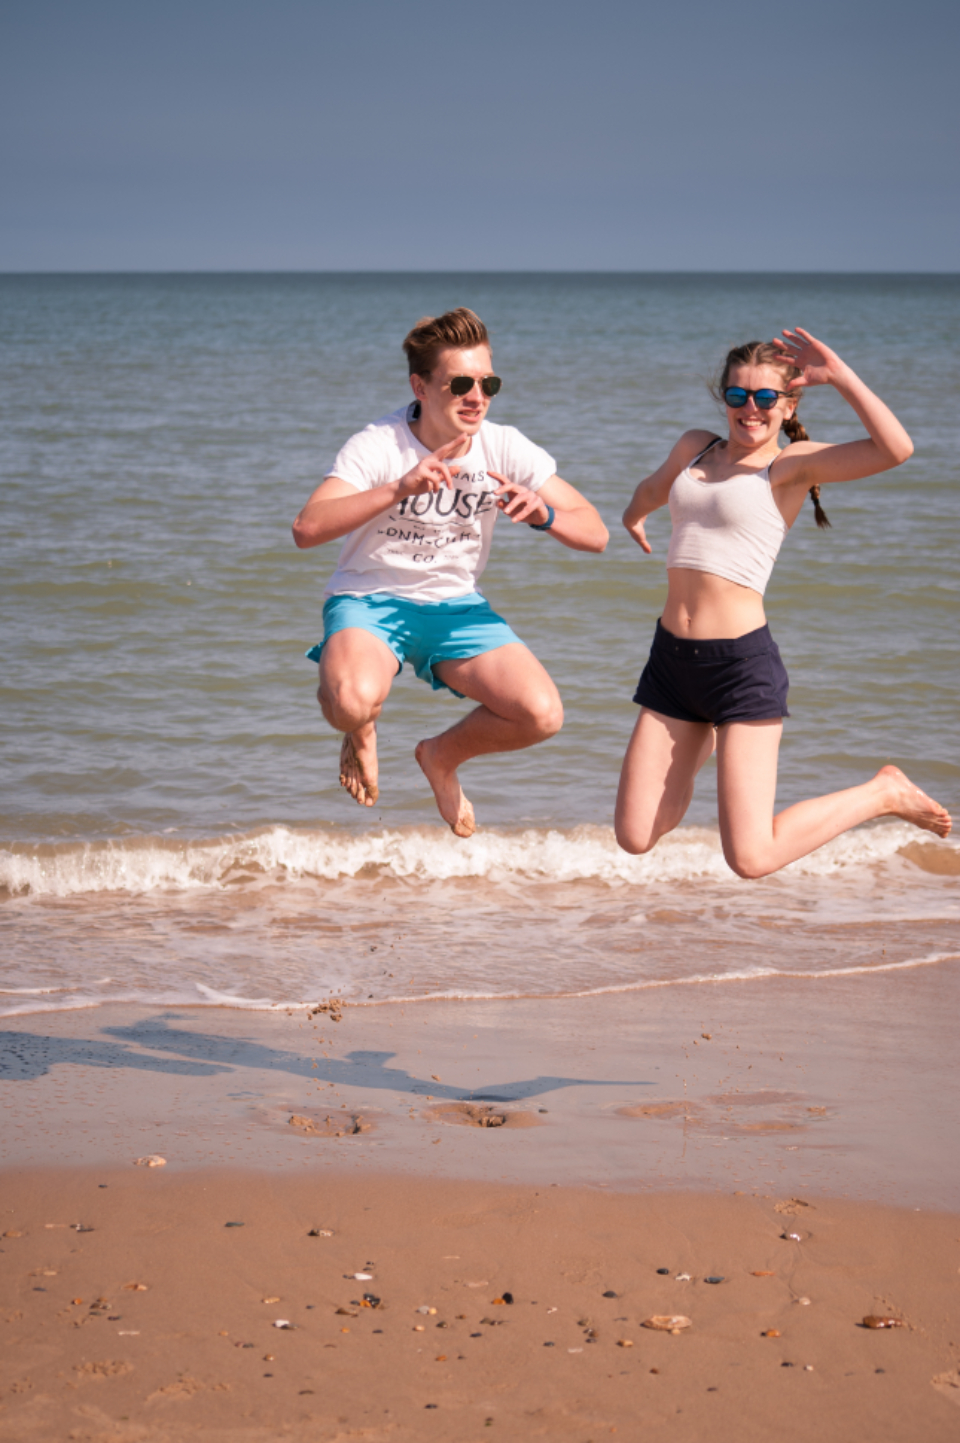 people jumping beach boy girl fun play ocean water sea shore coast sand vacation happy young leisure summer